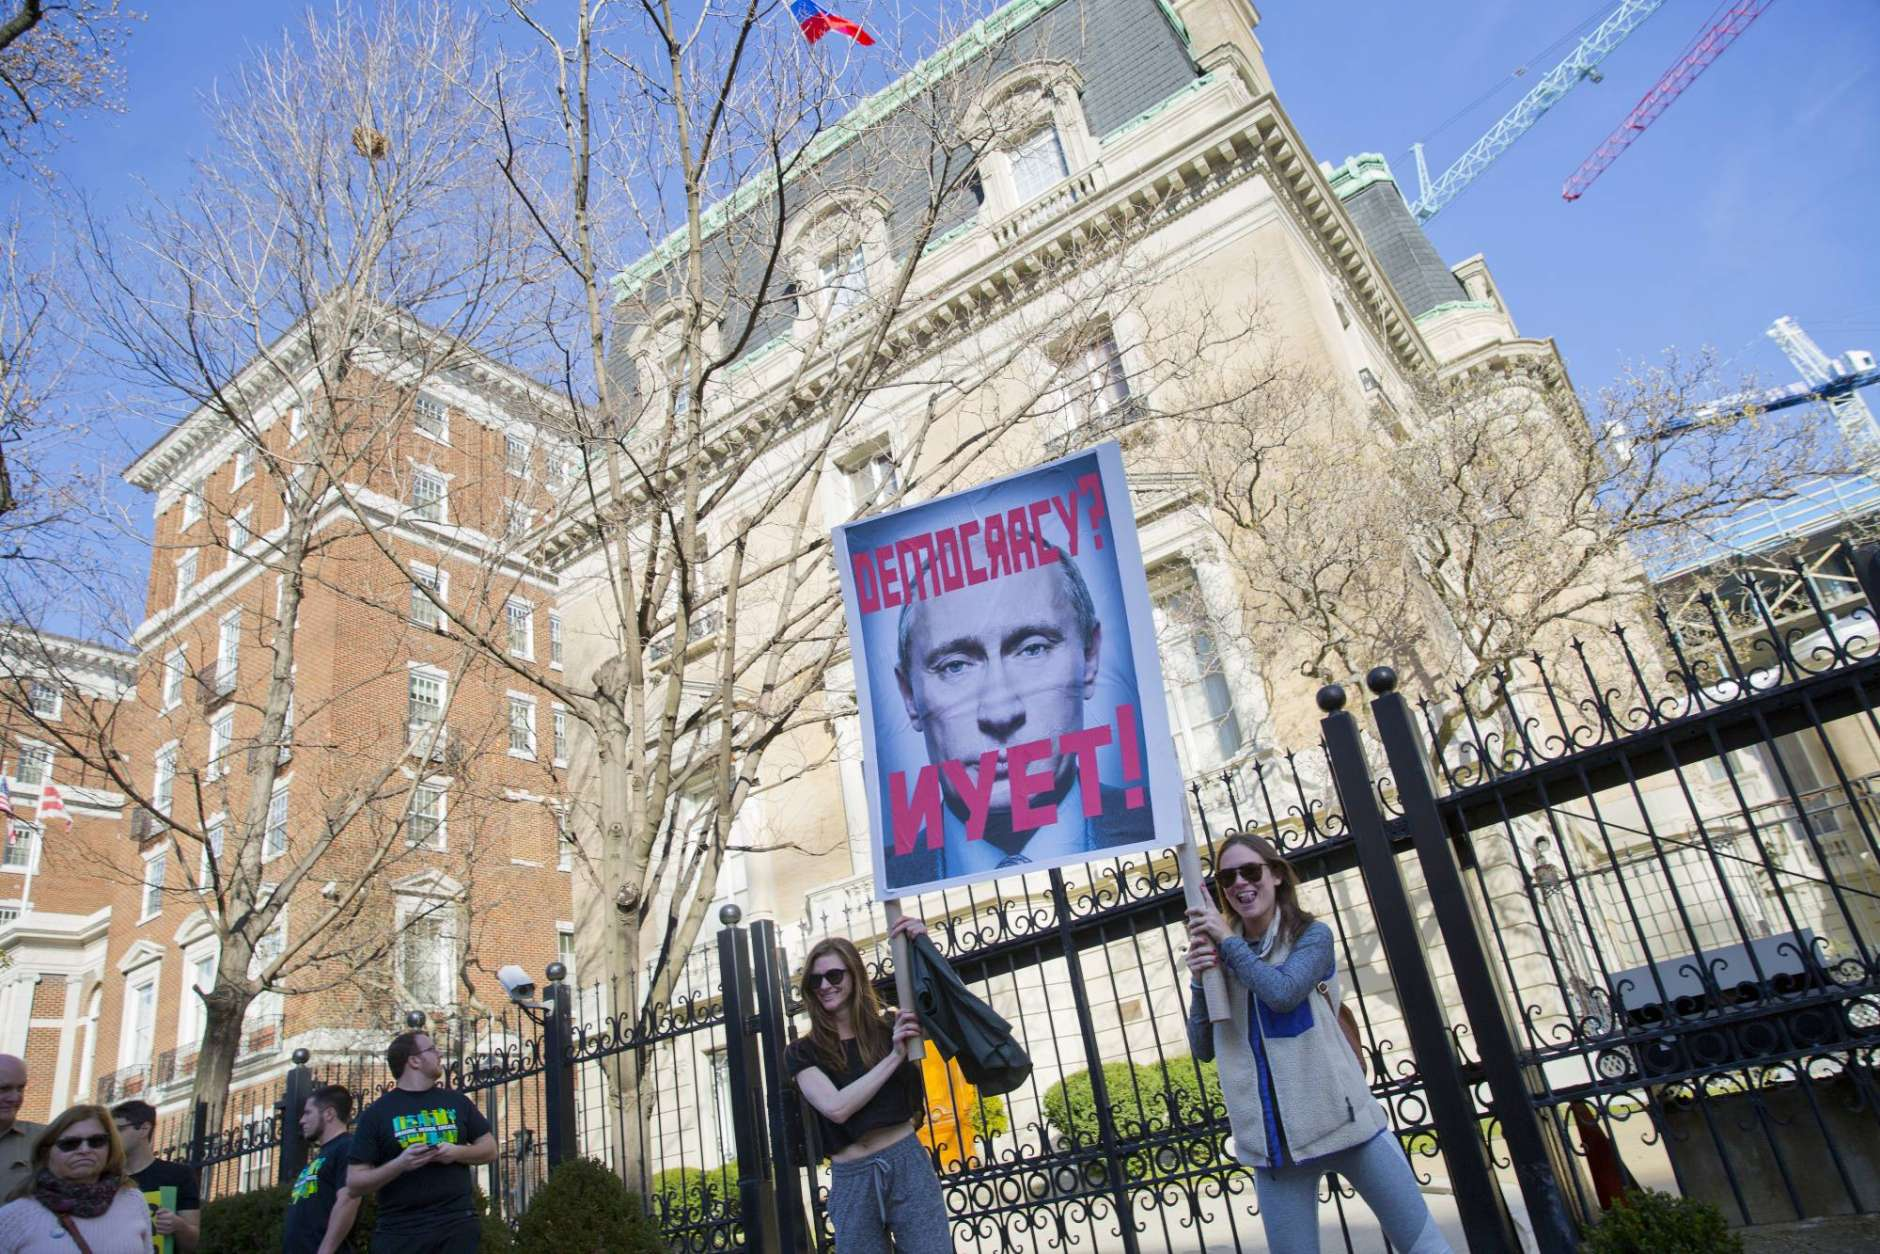 A pair of demonstrators hold up a sign showing Russian President Vladimir Putin in front of the Russian Ambassador's Residence in downtown Washington during a march toward the White House during a 'Not My President's Day' rally, Monday, Feb. 20, 2017.  Anti-Trump activists seized on Monday's federal holiday to organize rallies in cities around the country to oppose policies for President Donald Trump. (AP Photo/Pablo Martinez Monsivais)